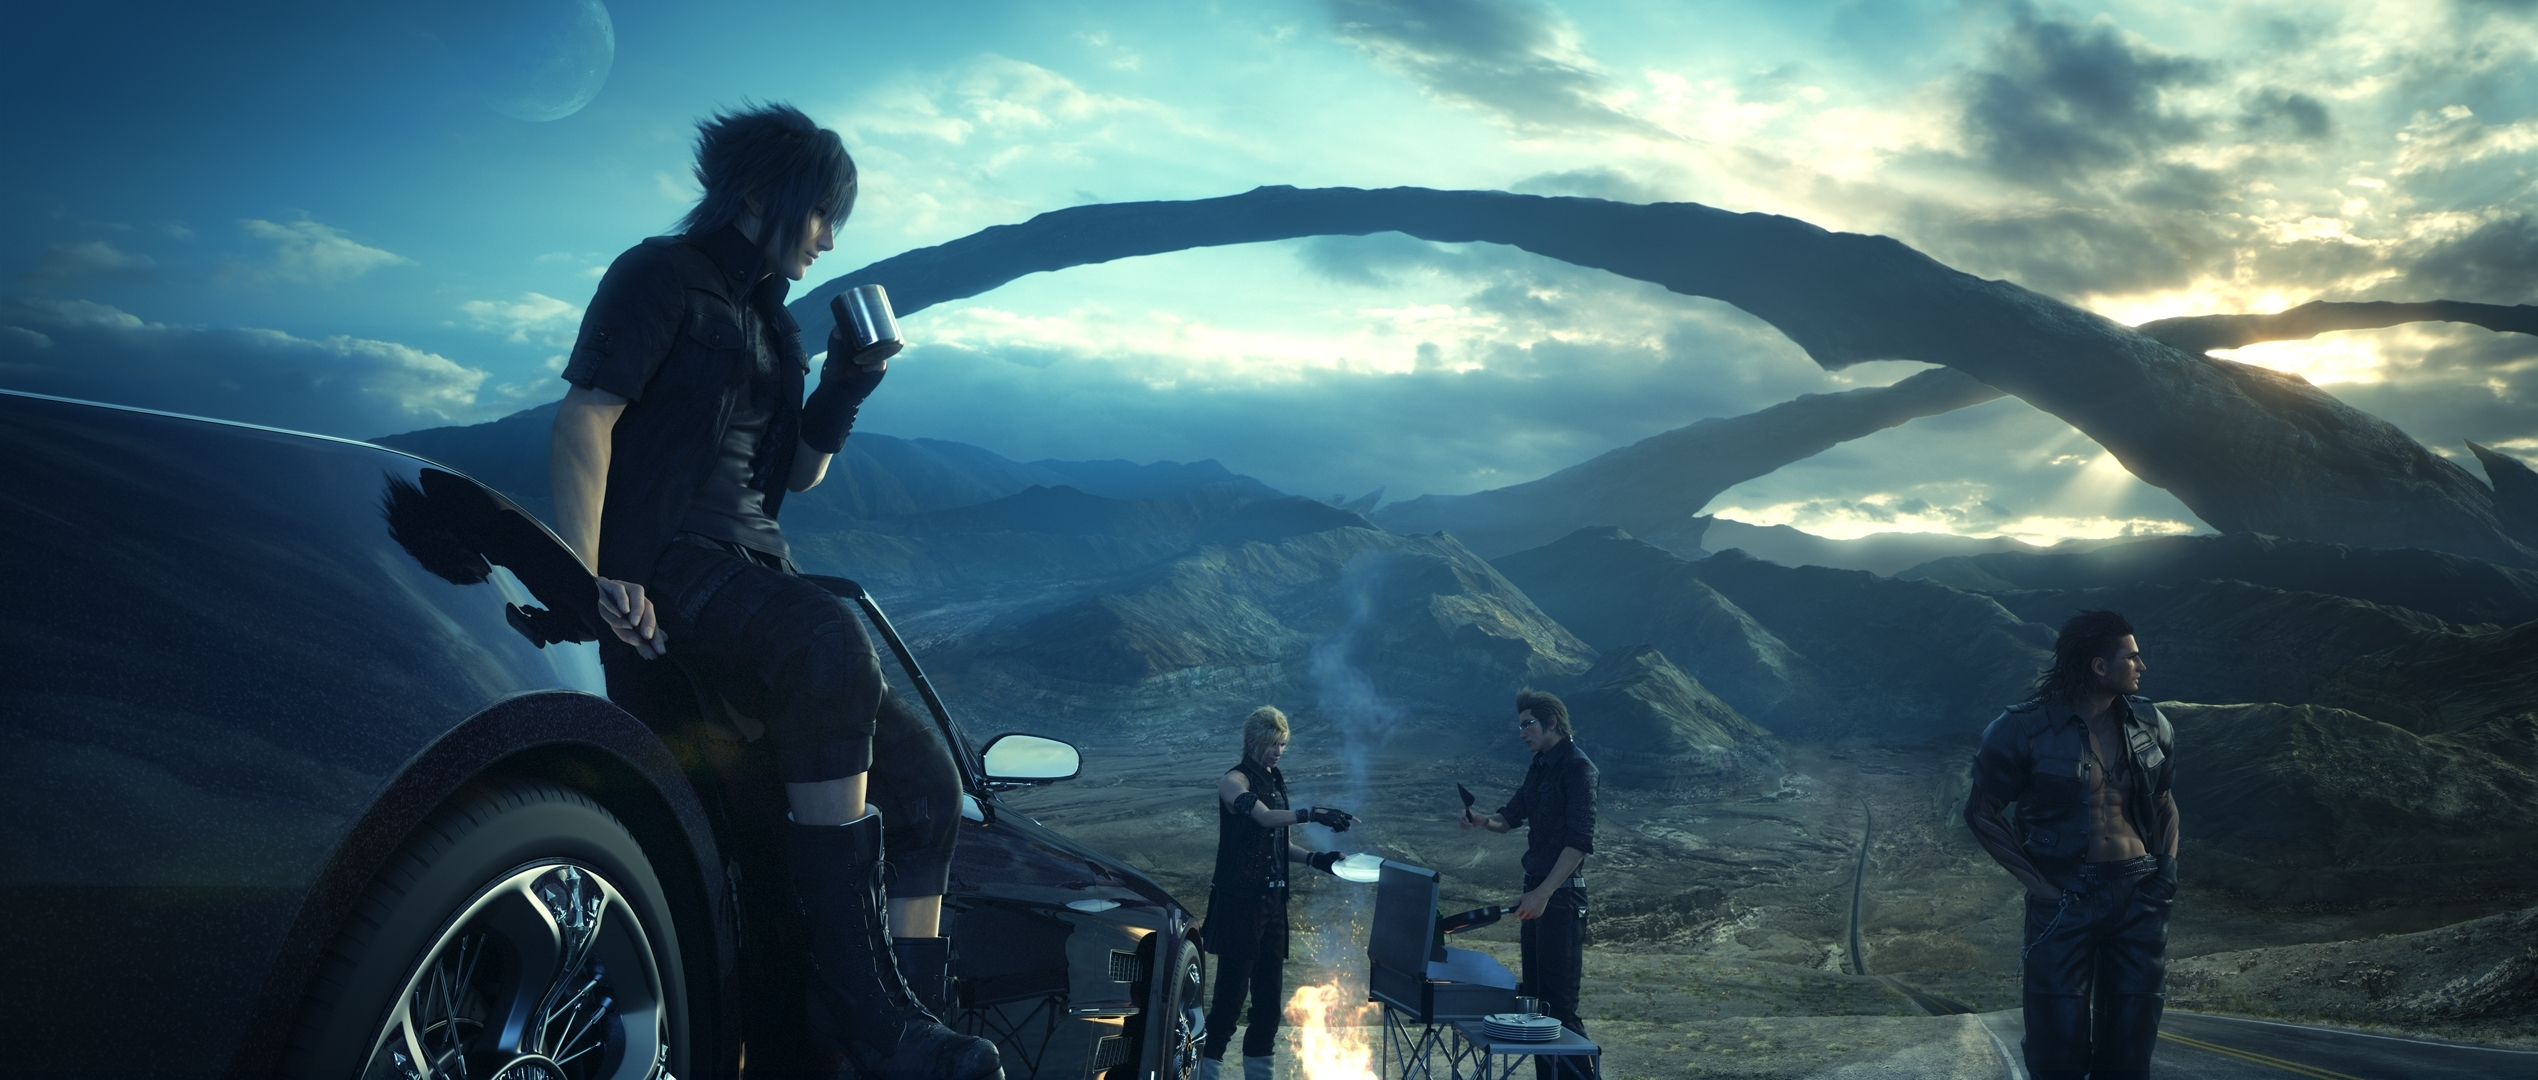 98 final fantasy xv hd wallpapers | background images - wallpaper abyss